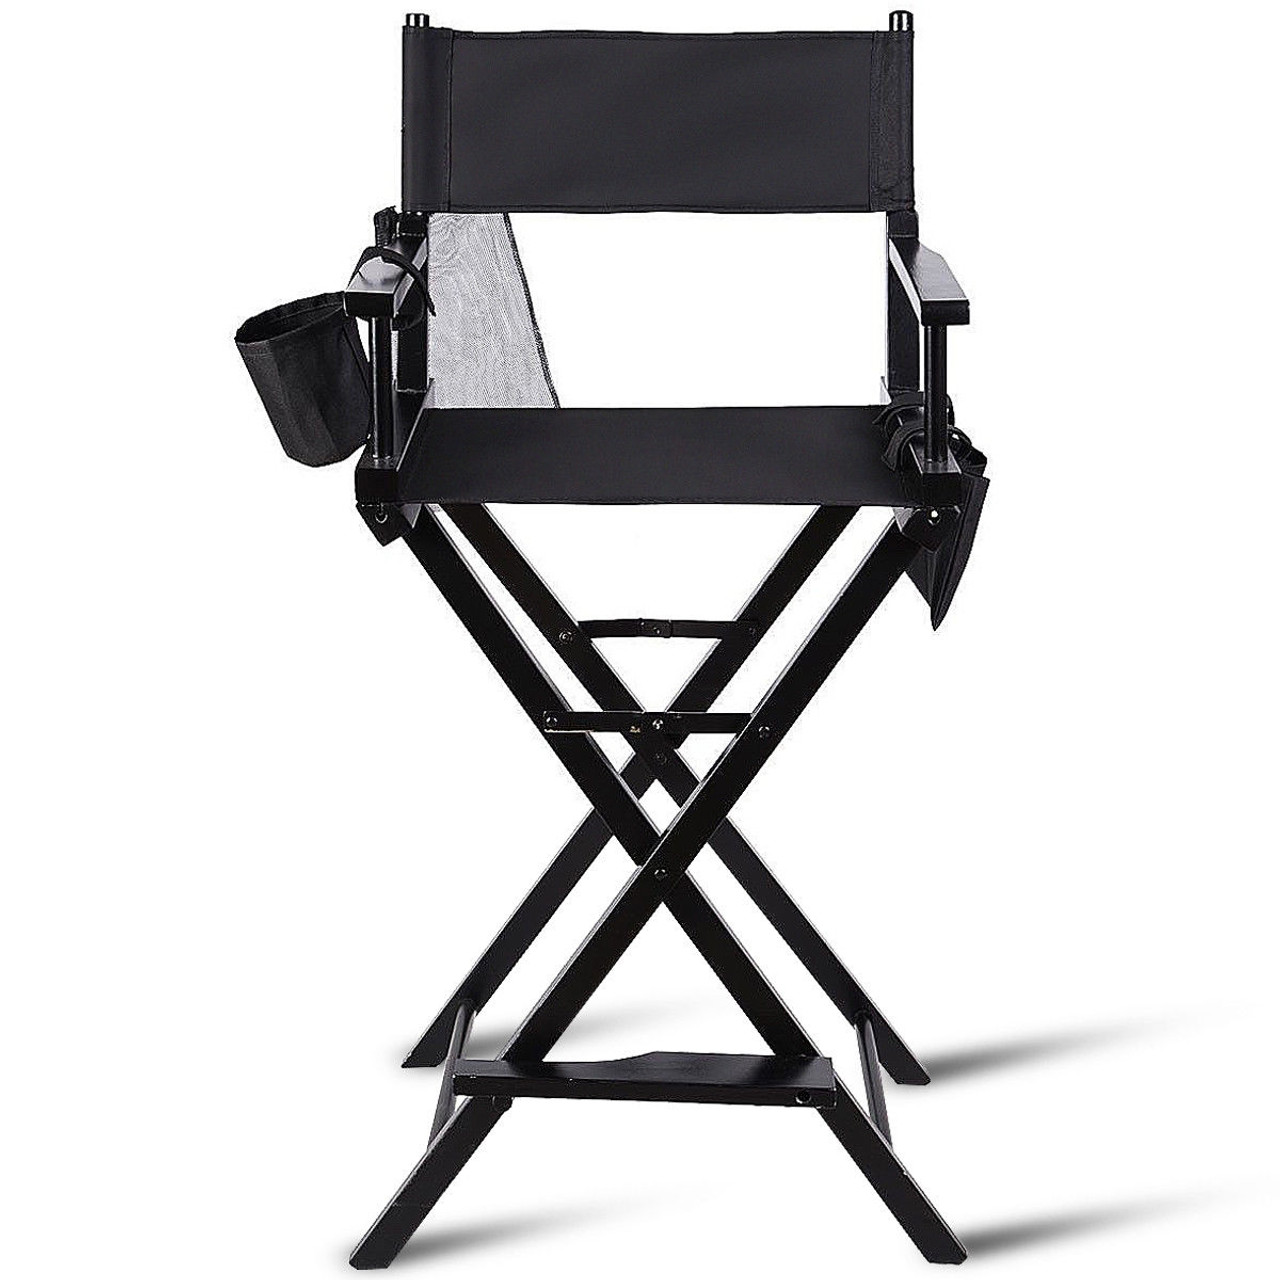 Professional Makeup Artist Foldable Chair Hw56211